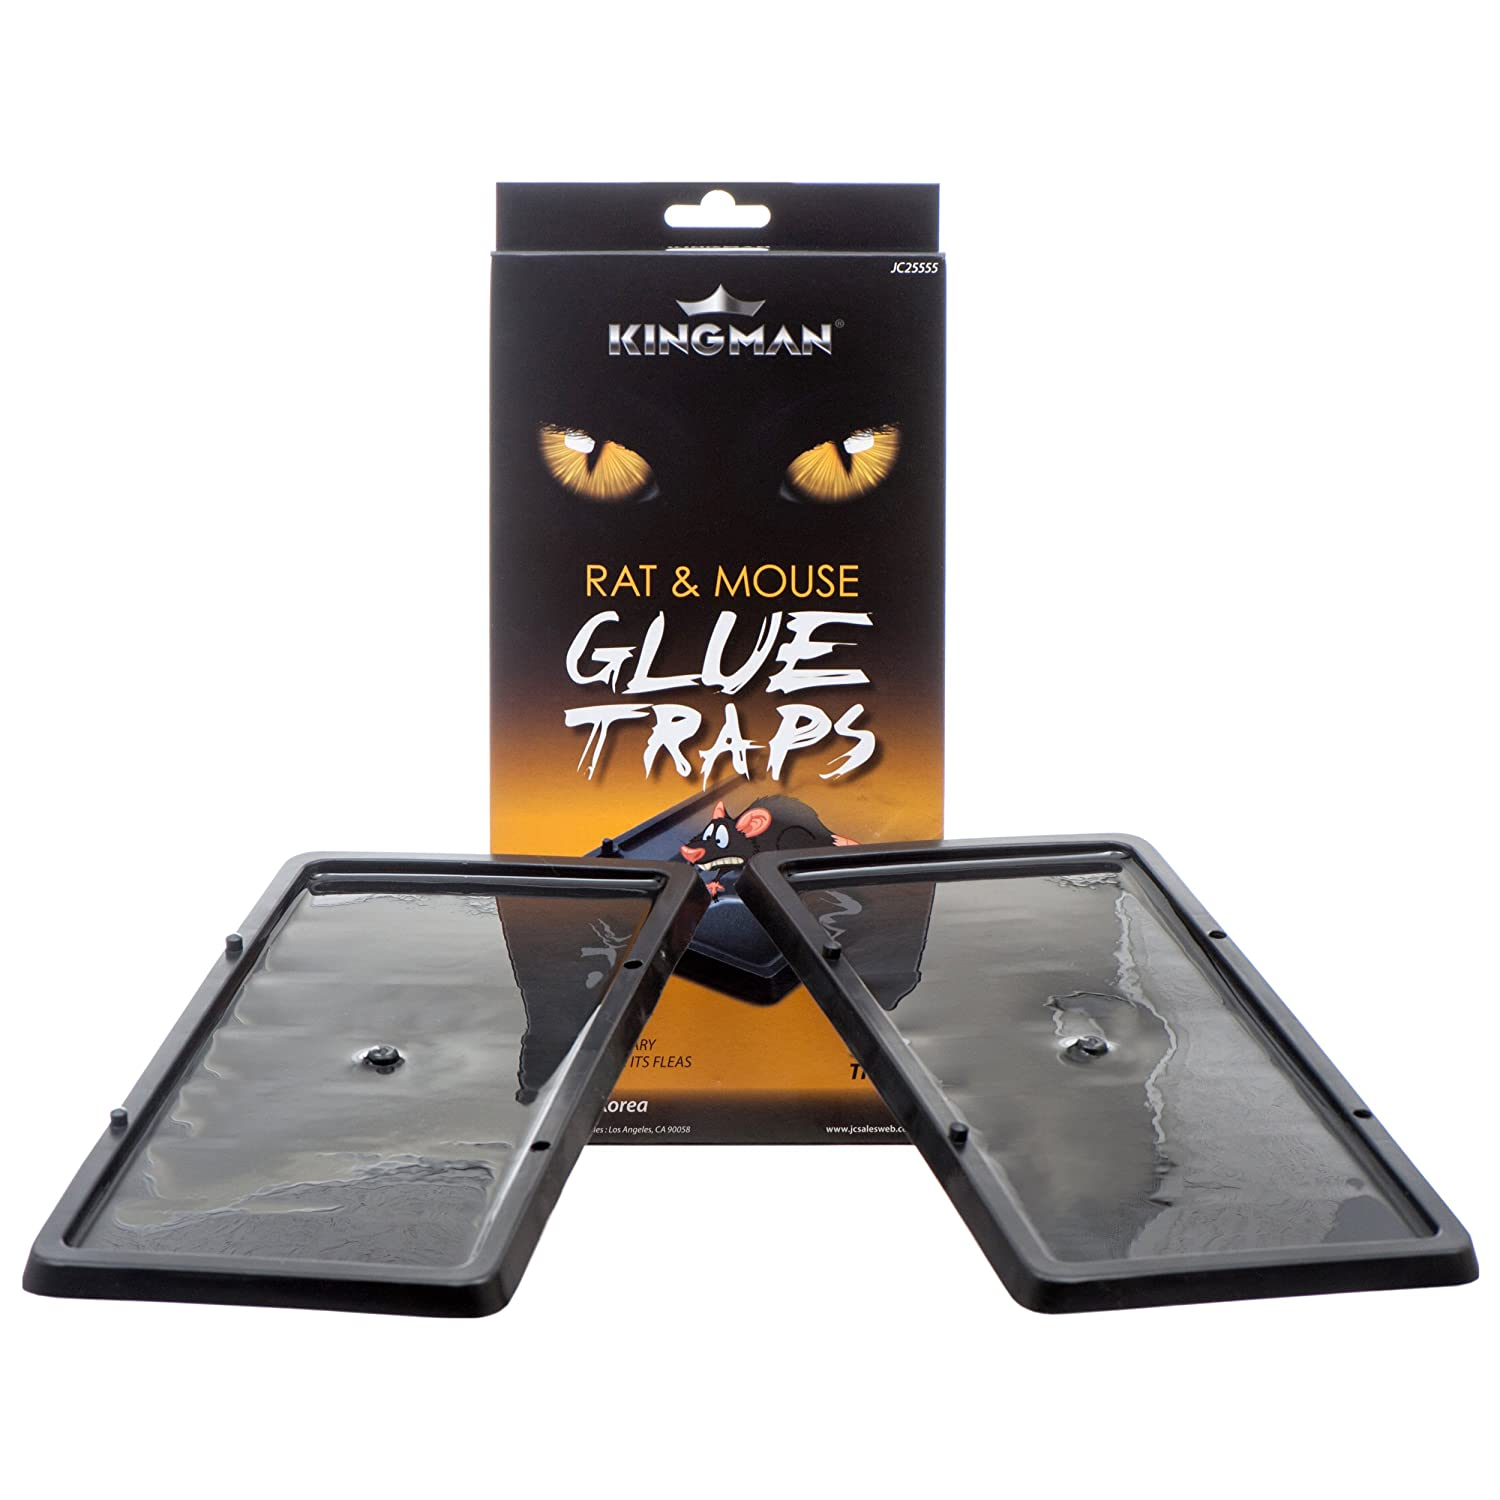 Amazon.com : KINGMAN Mouse Trap Rat Trap Glue Trap/Board (Large Size) (5 Pack / 10 Traps) Rodent Trap Safe Easy Non-toxic : Garden & Outdoor